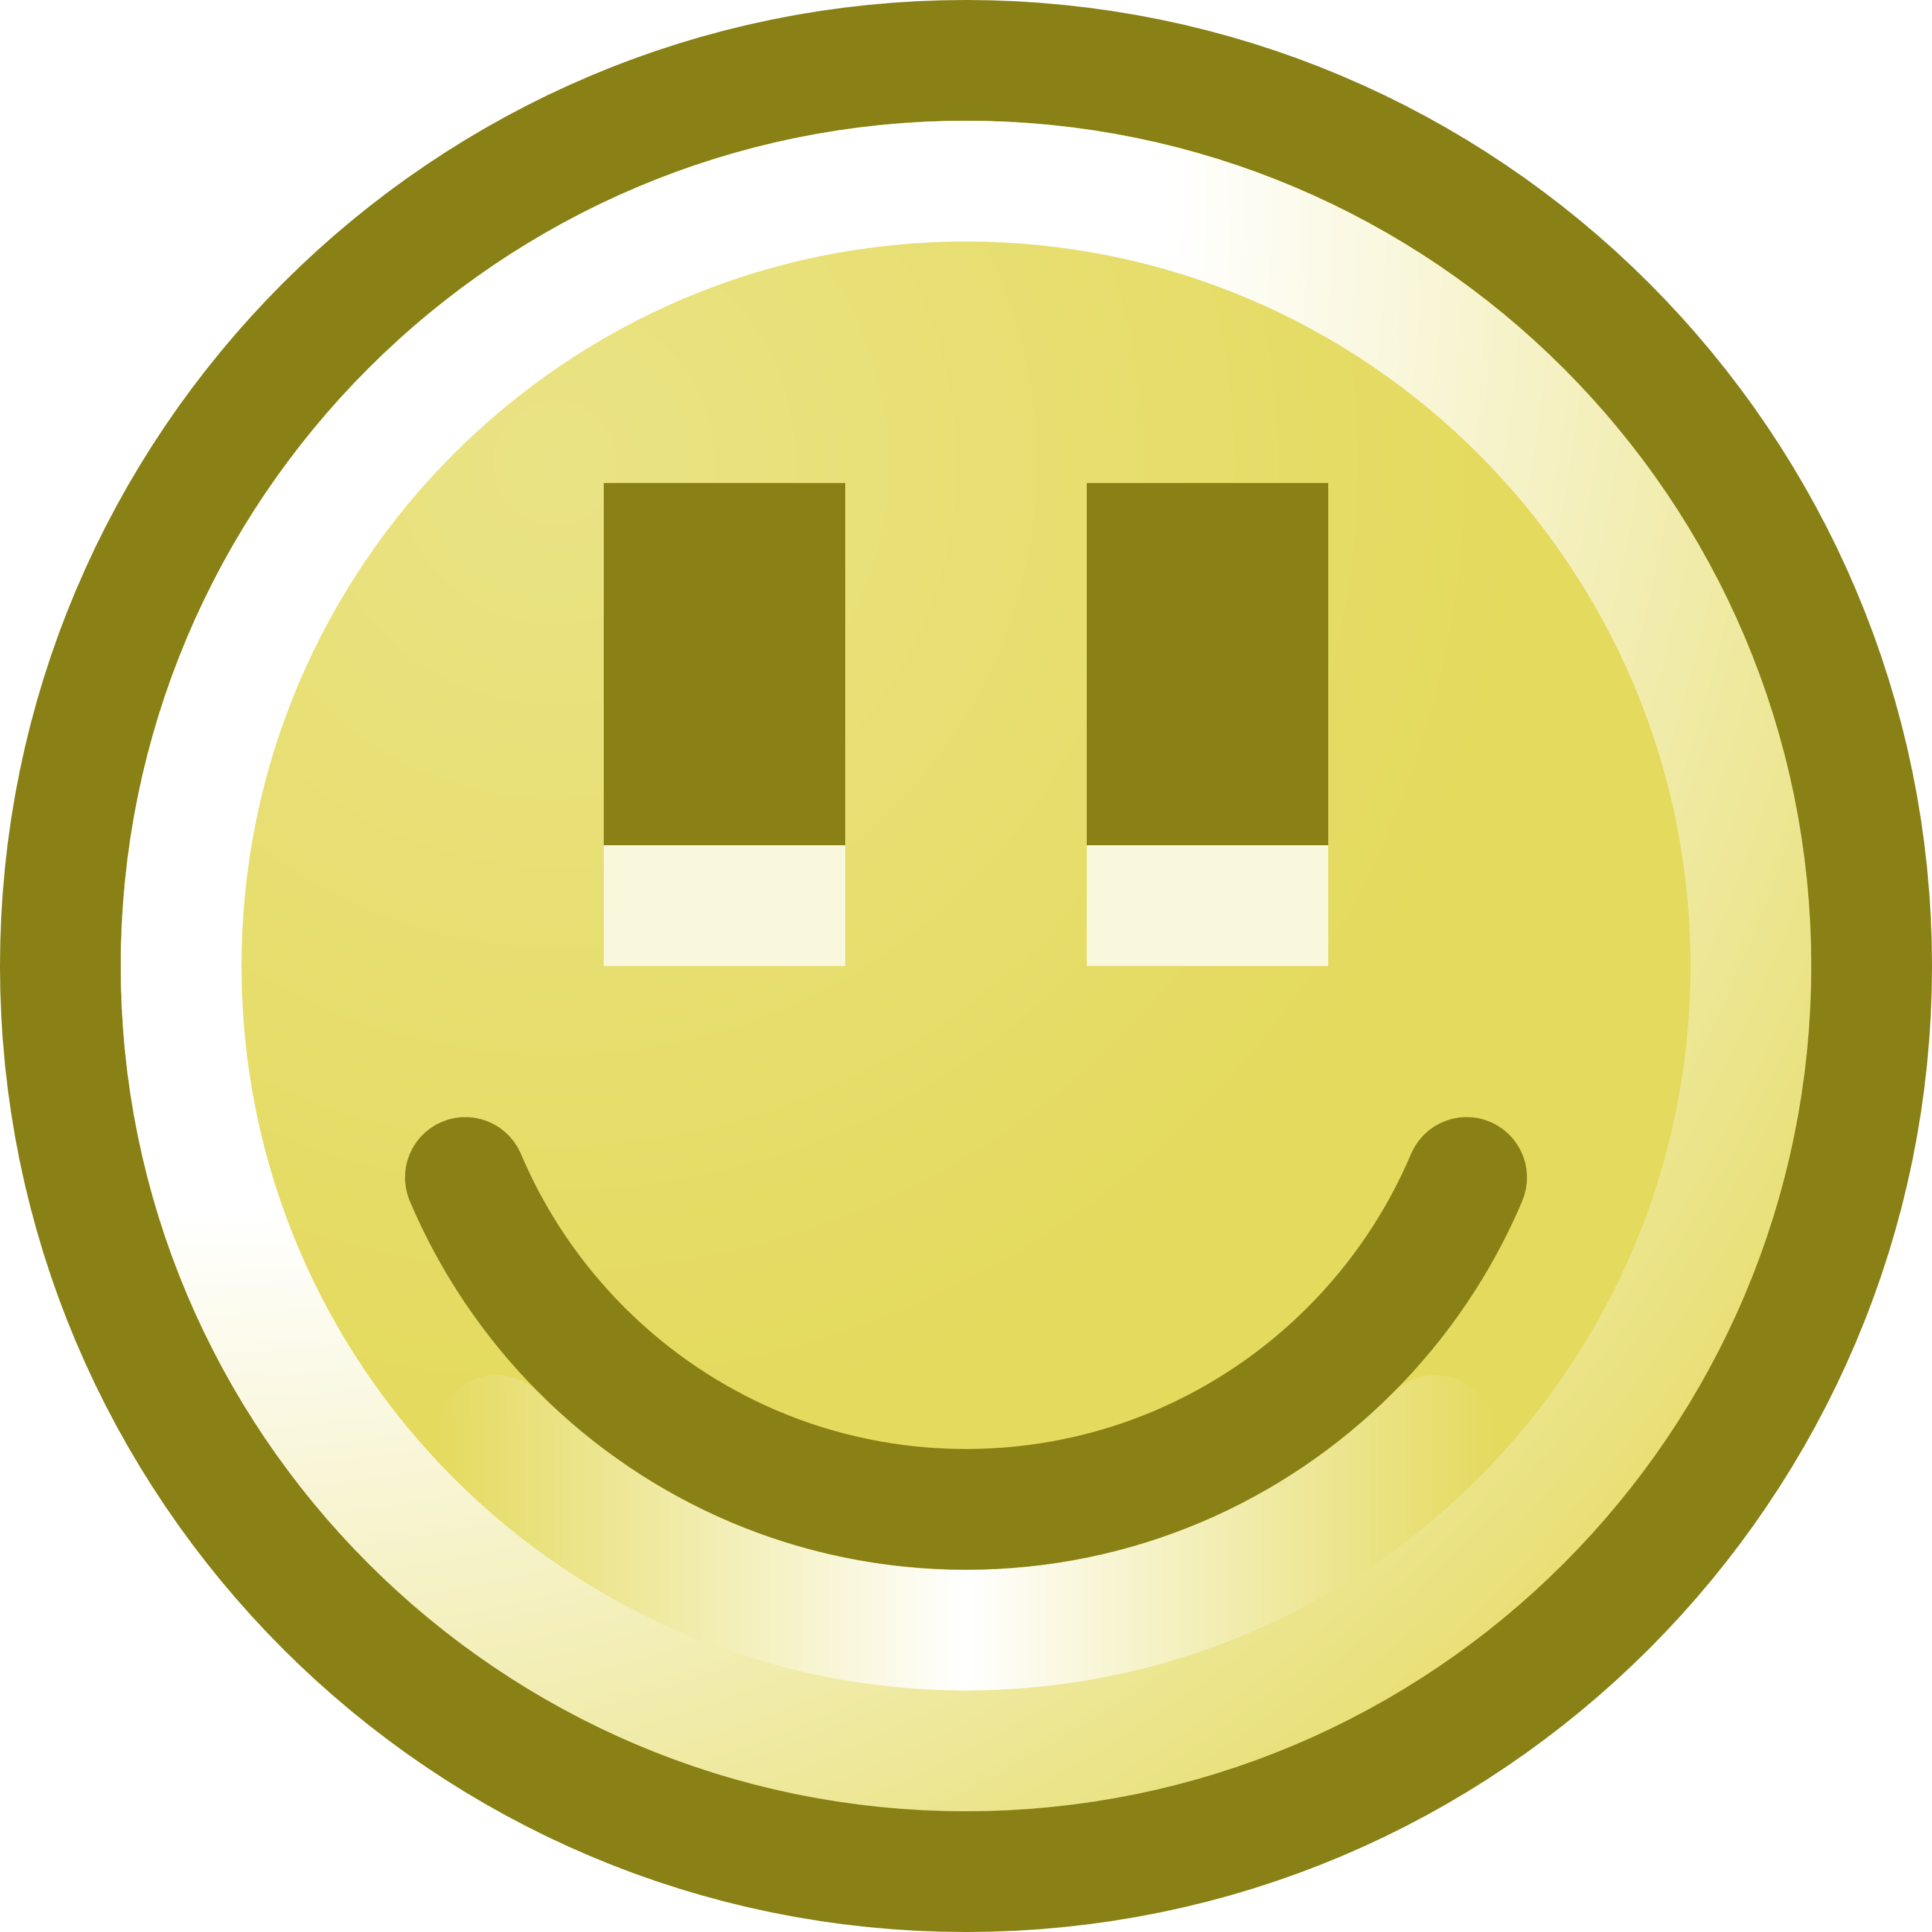 Red Smiley Face Png | Clipart Panda - Free Clipart Images